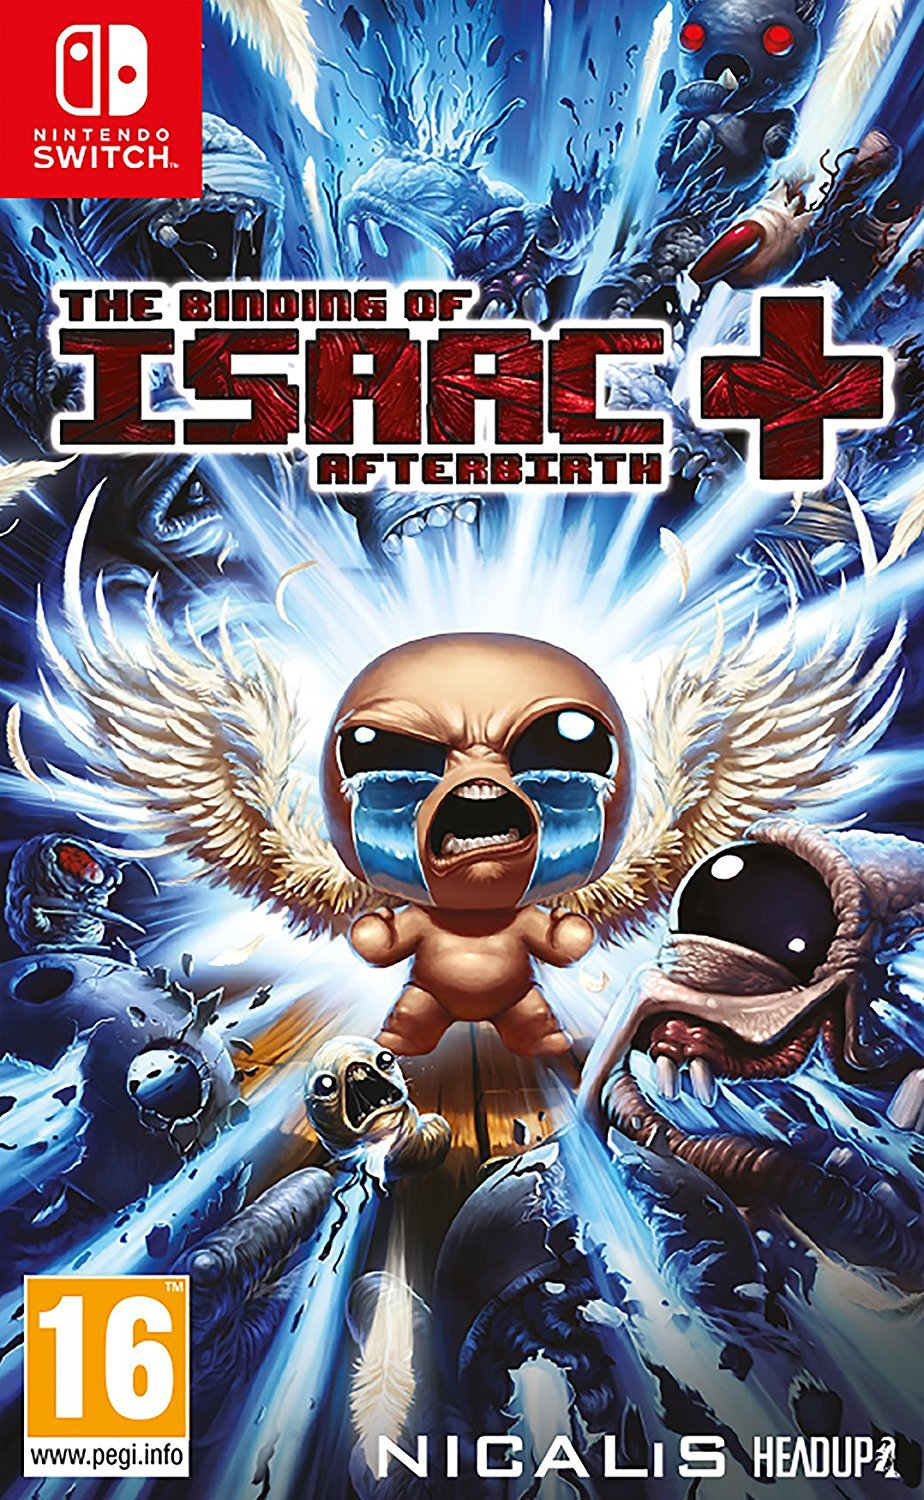 Image of Binding of Isaac: Afterbirth Nintendo Switch Game